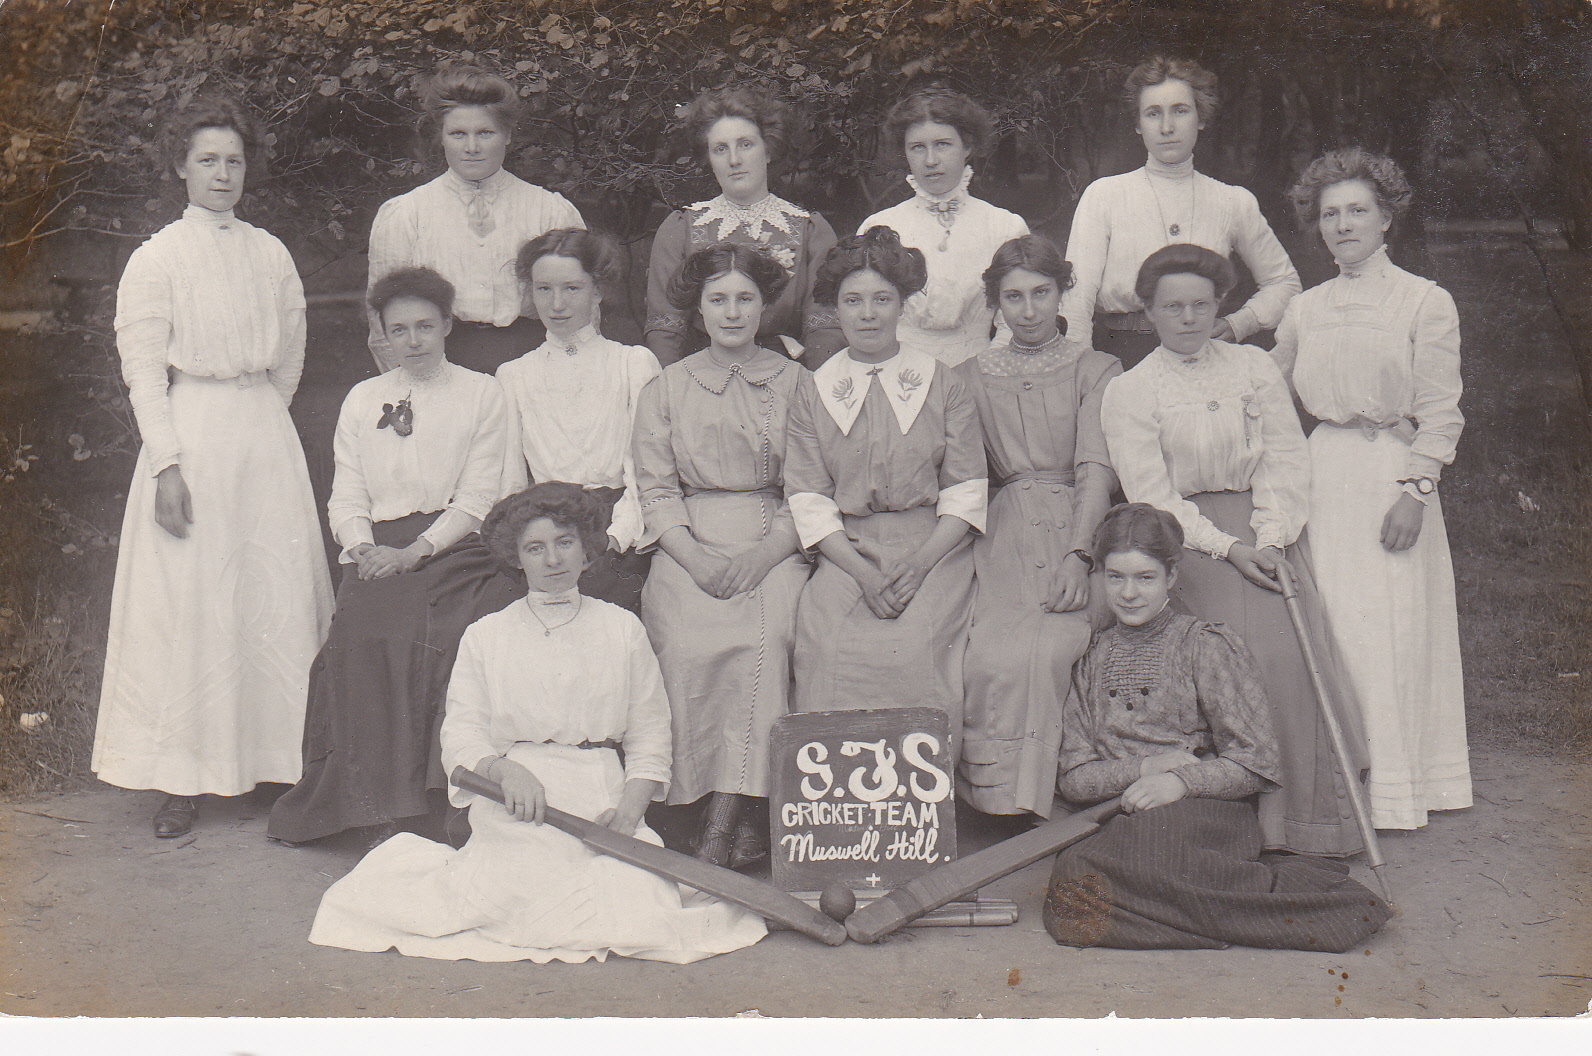 SJS Women's Cricket Team 1911